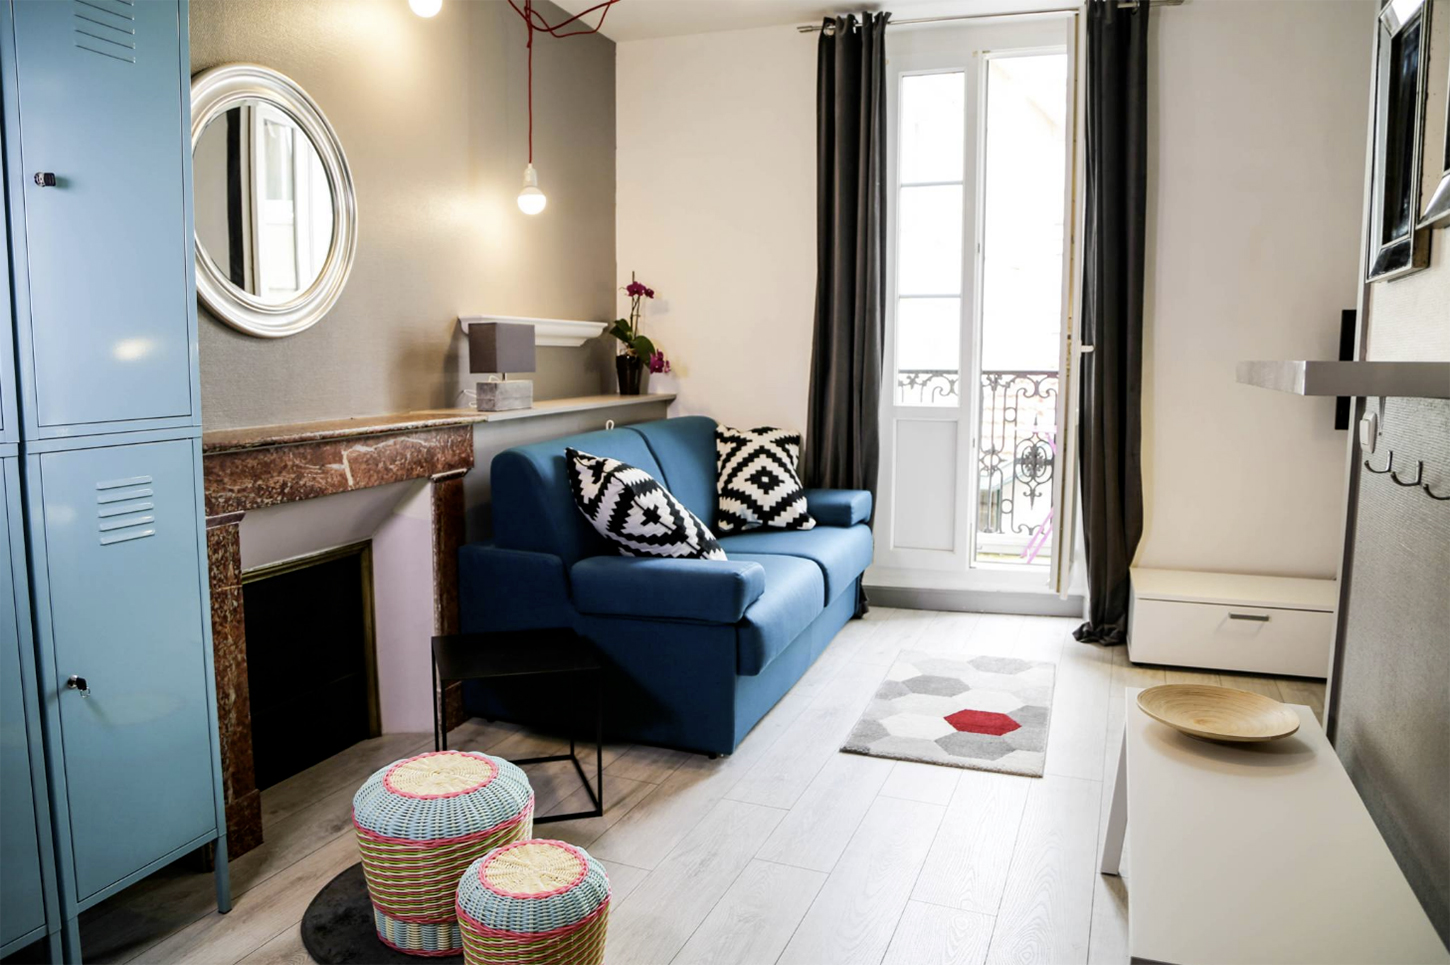 carolinemaccioni-renovationcomplete-decoration-biarritz-studio-vacances1